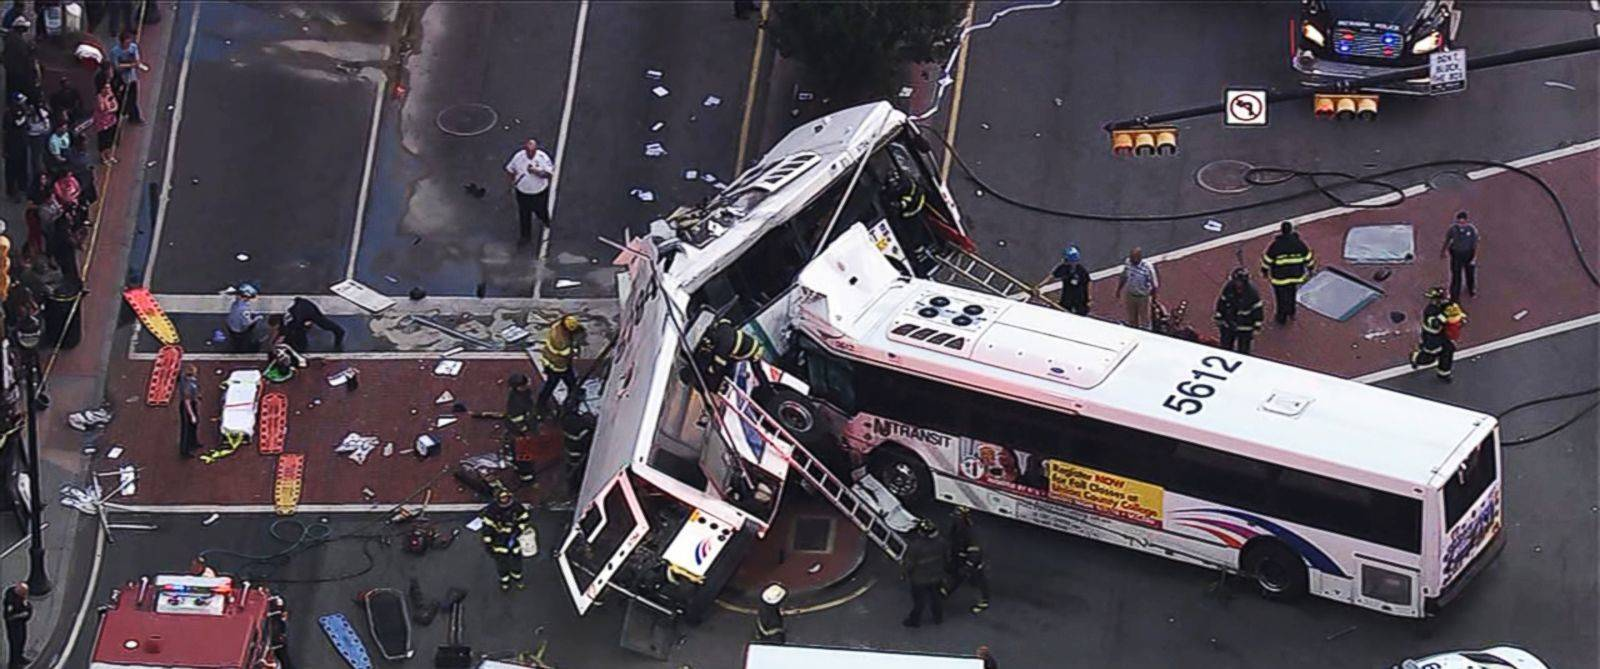 6cb0da870da8b6356804_HT_bus_crash1_ml_160819_31x13_1600.jpg